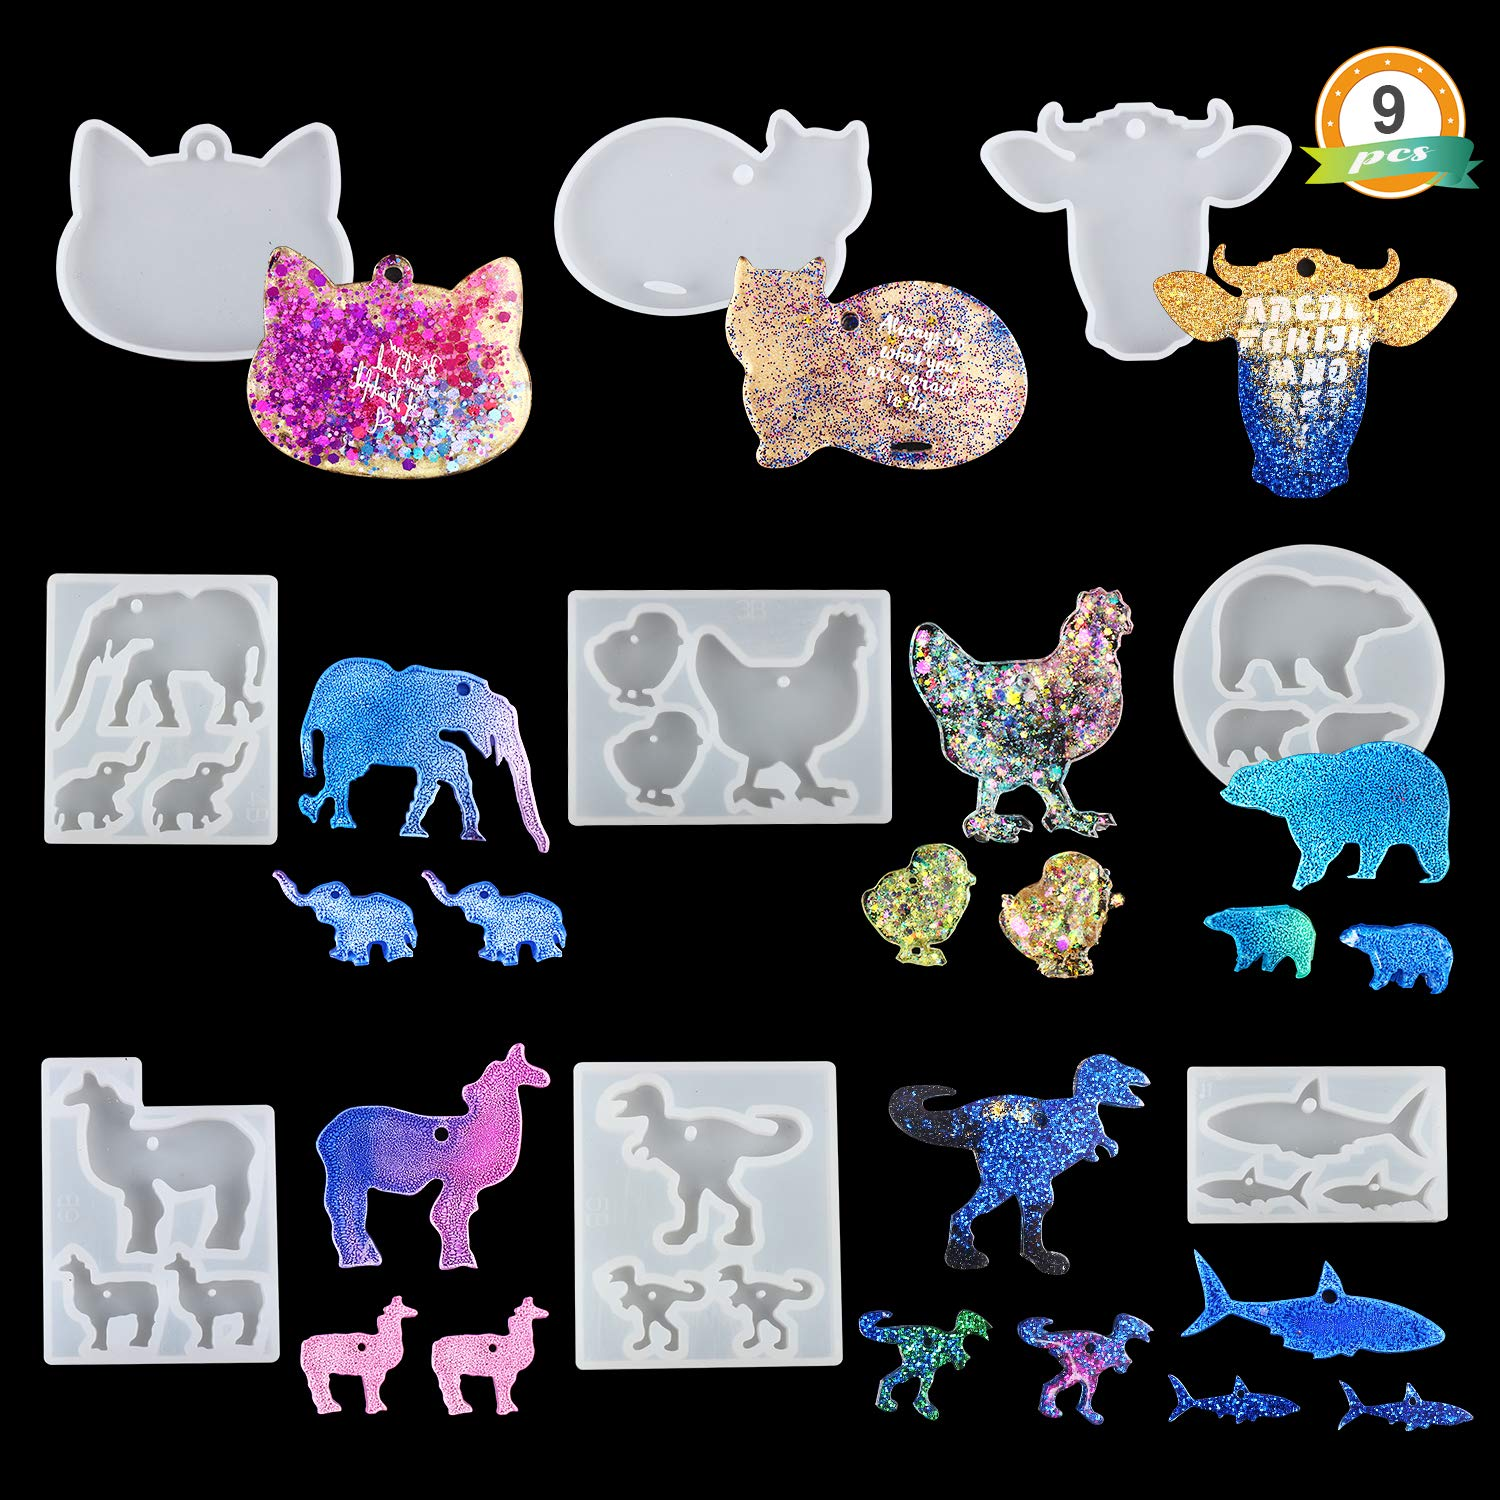 Let S Resin Animal Keychain Silicone Molds 9pcs Shiny Resin Molds Keychain Molds For Epoxy With Bear Llama Cat Hen Dinosaur Shark Elephant Bull Head Shape Amazon In Home Kitchen